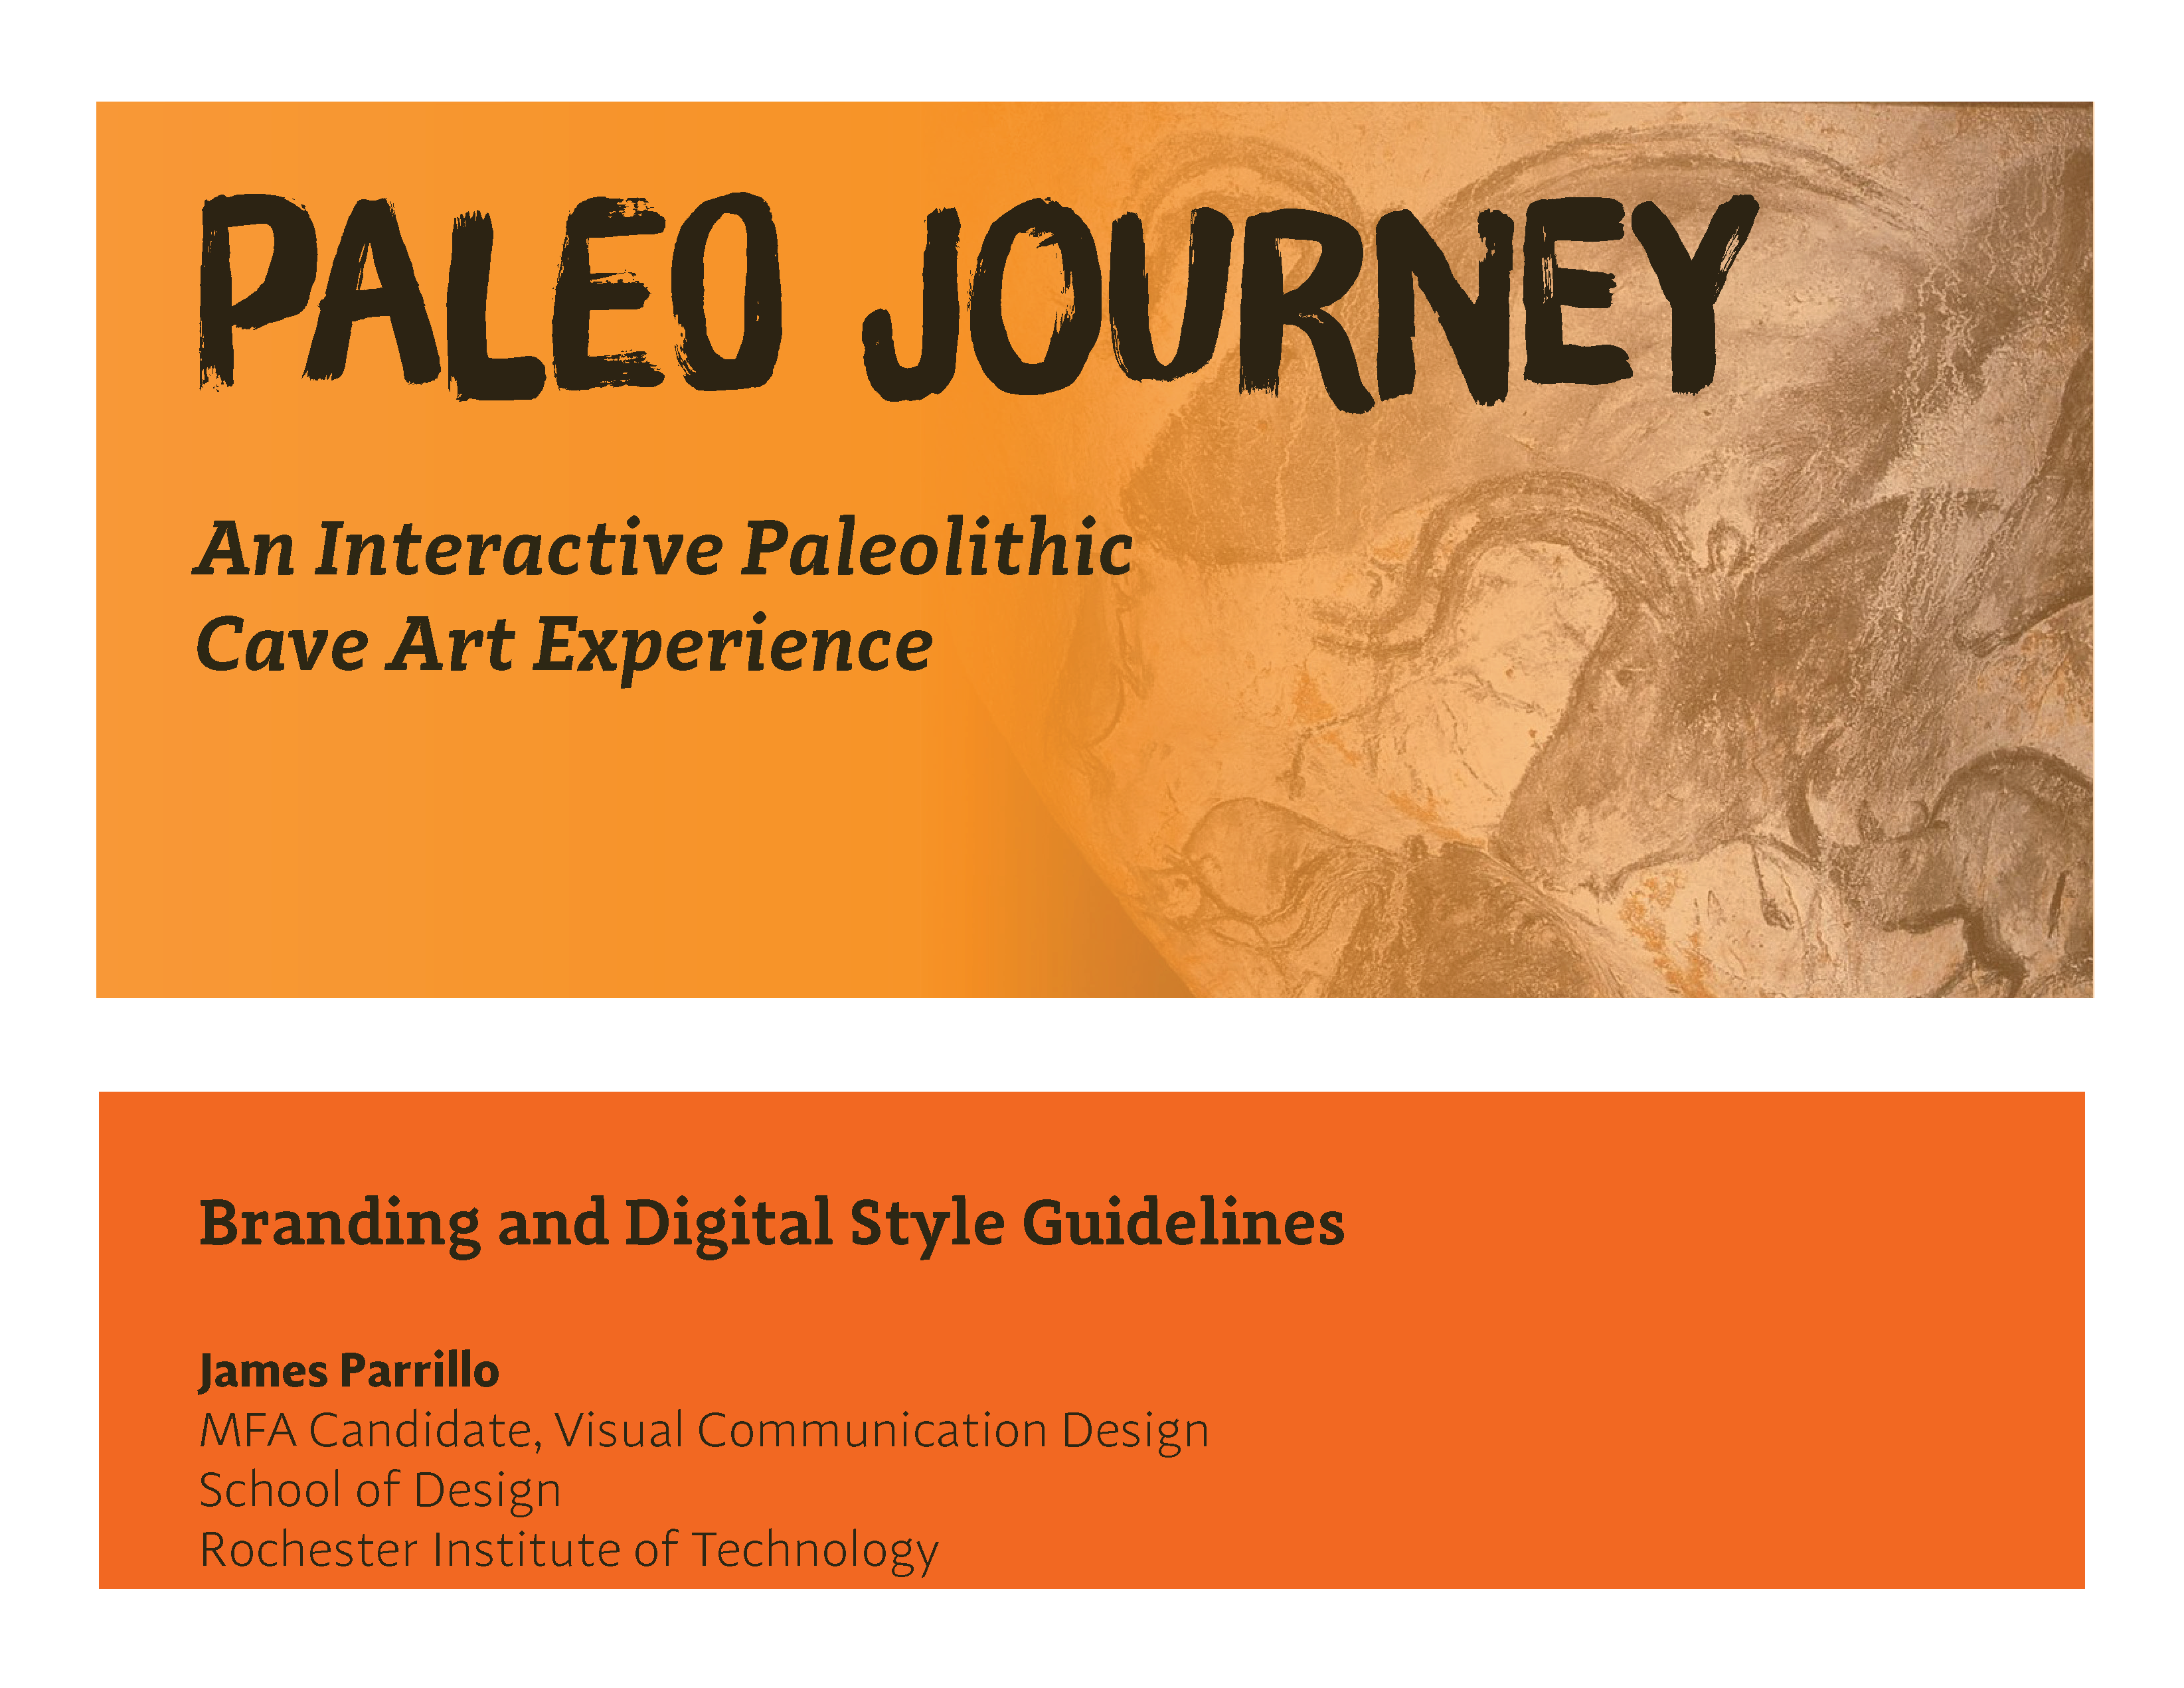 Paleo Journey_ An Interactive Paleolithic Cave Art Experience. Us_Page_62